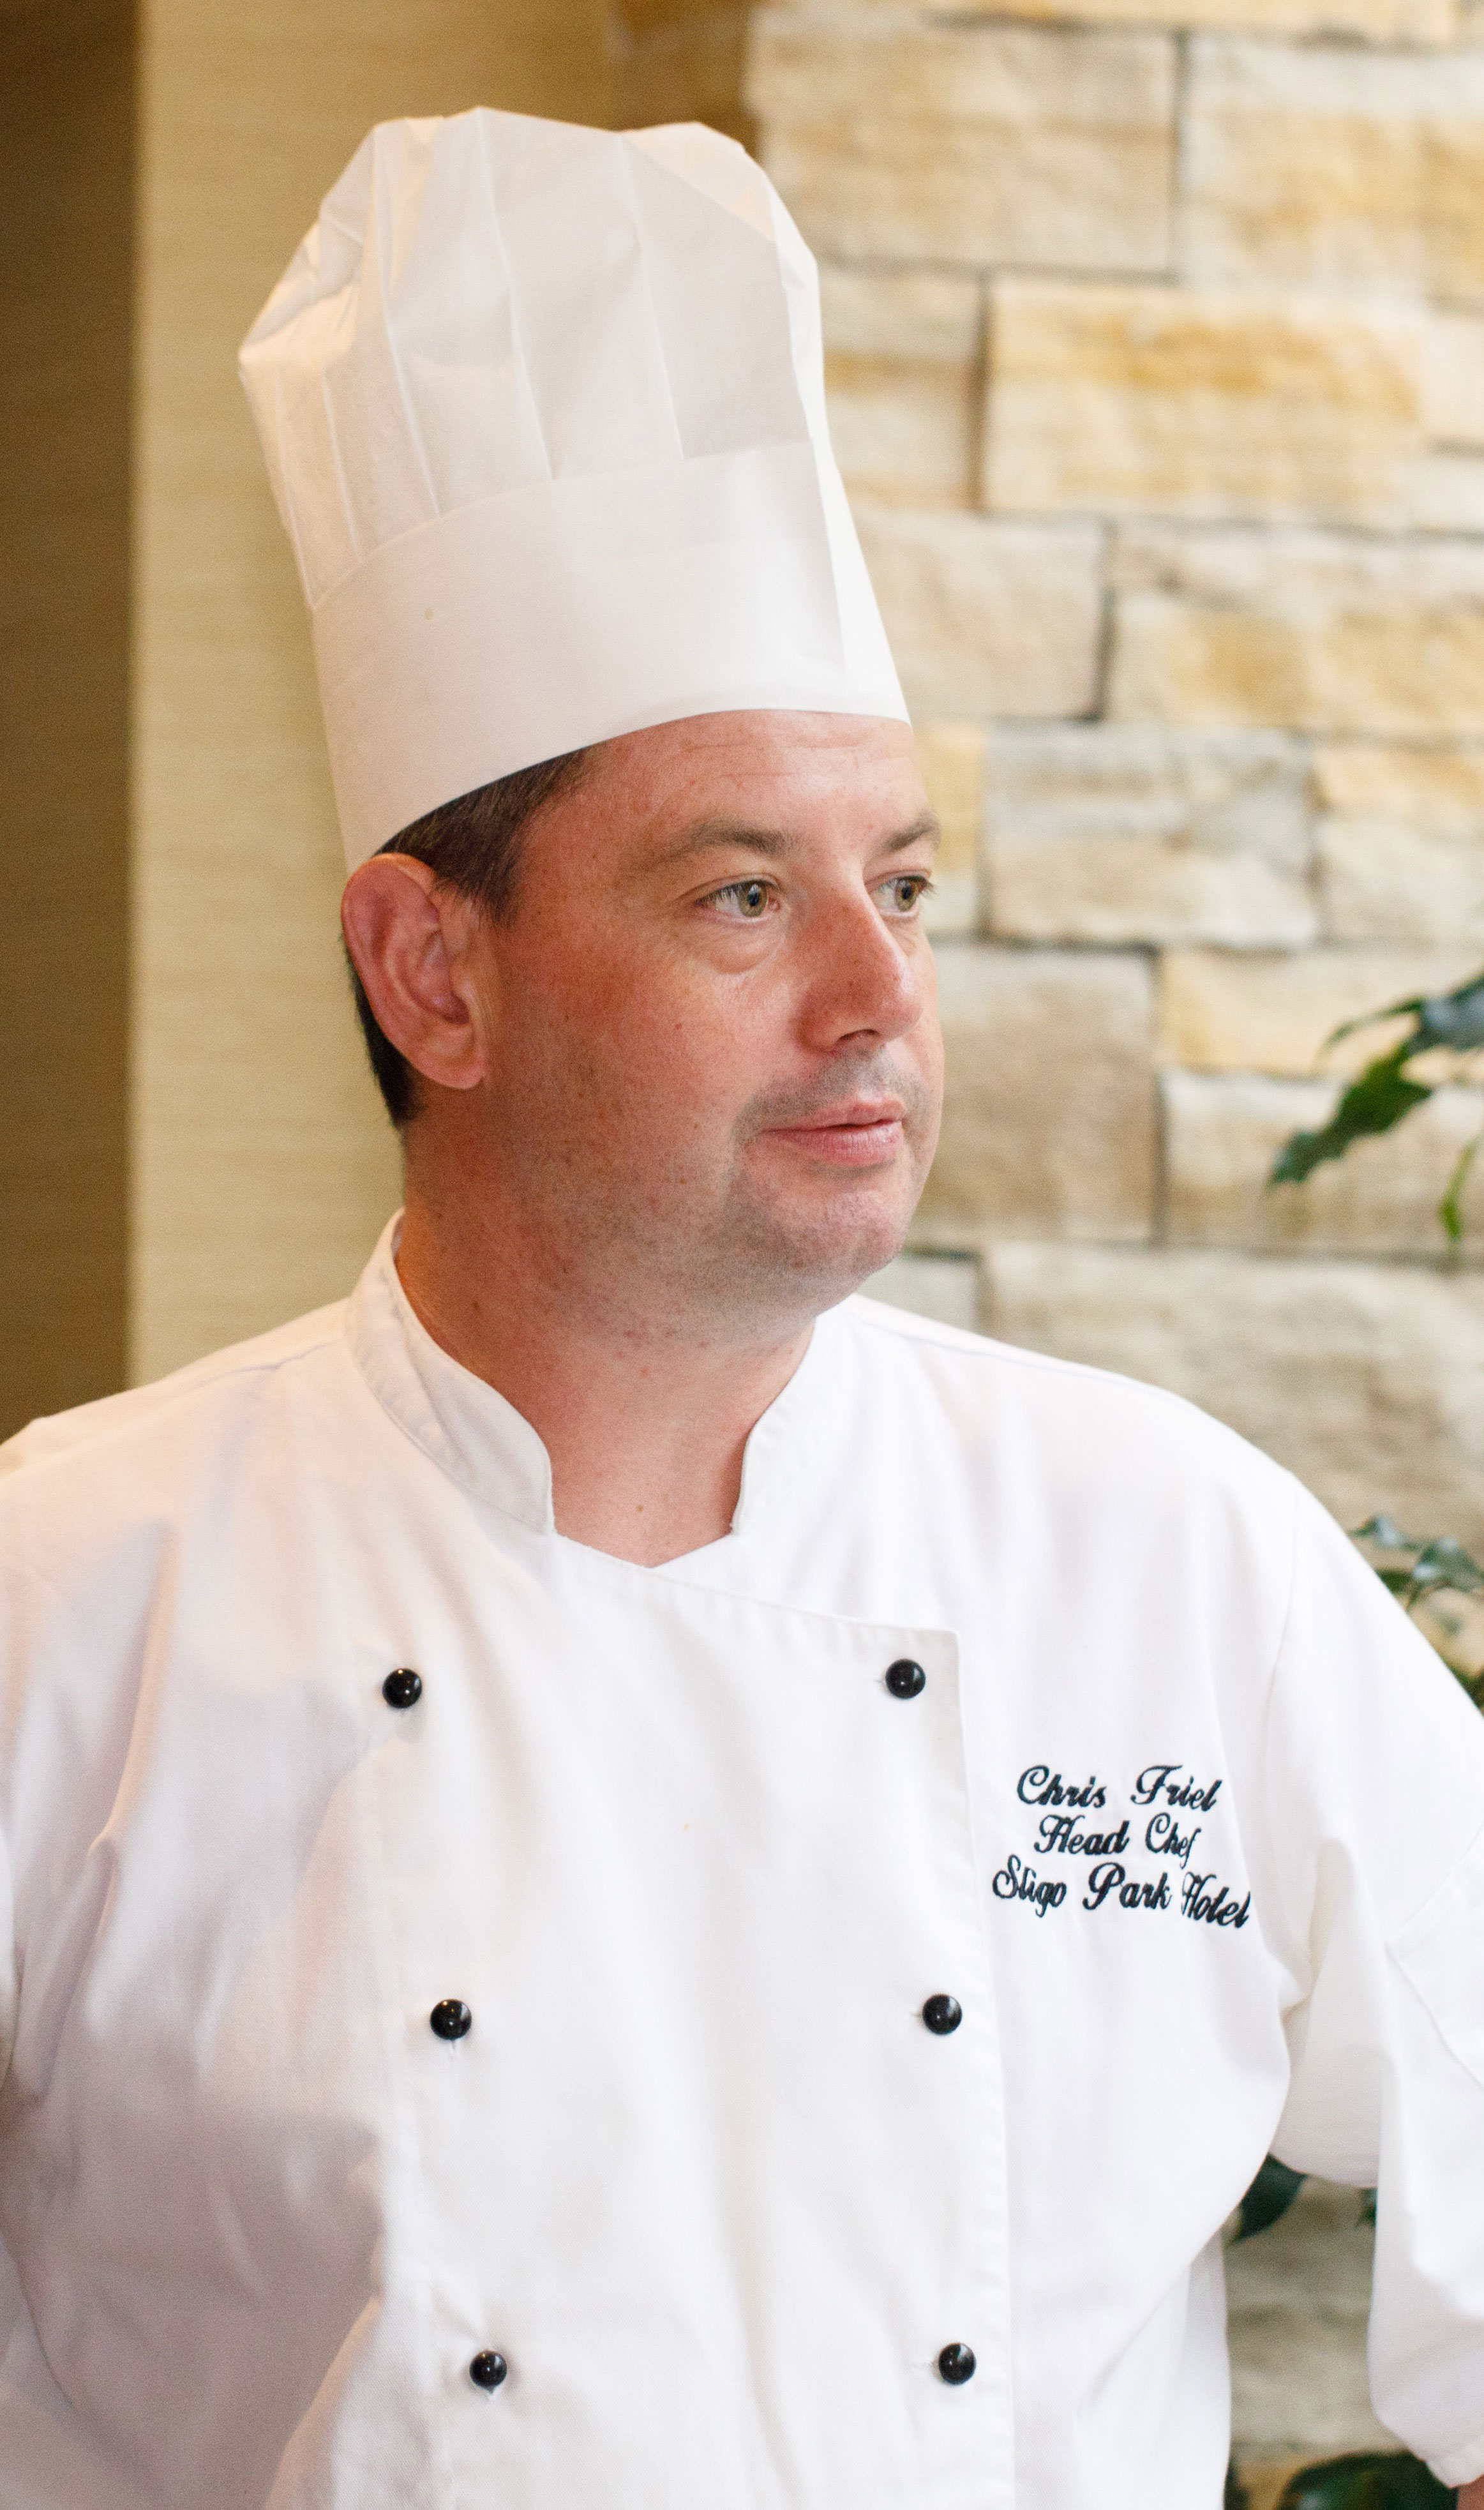 Faces of the Sligo Food Trail: Chris Friel, The Sligo Park Hotel